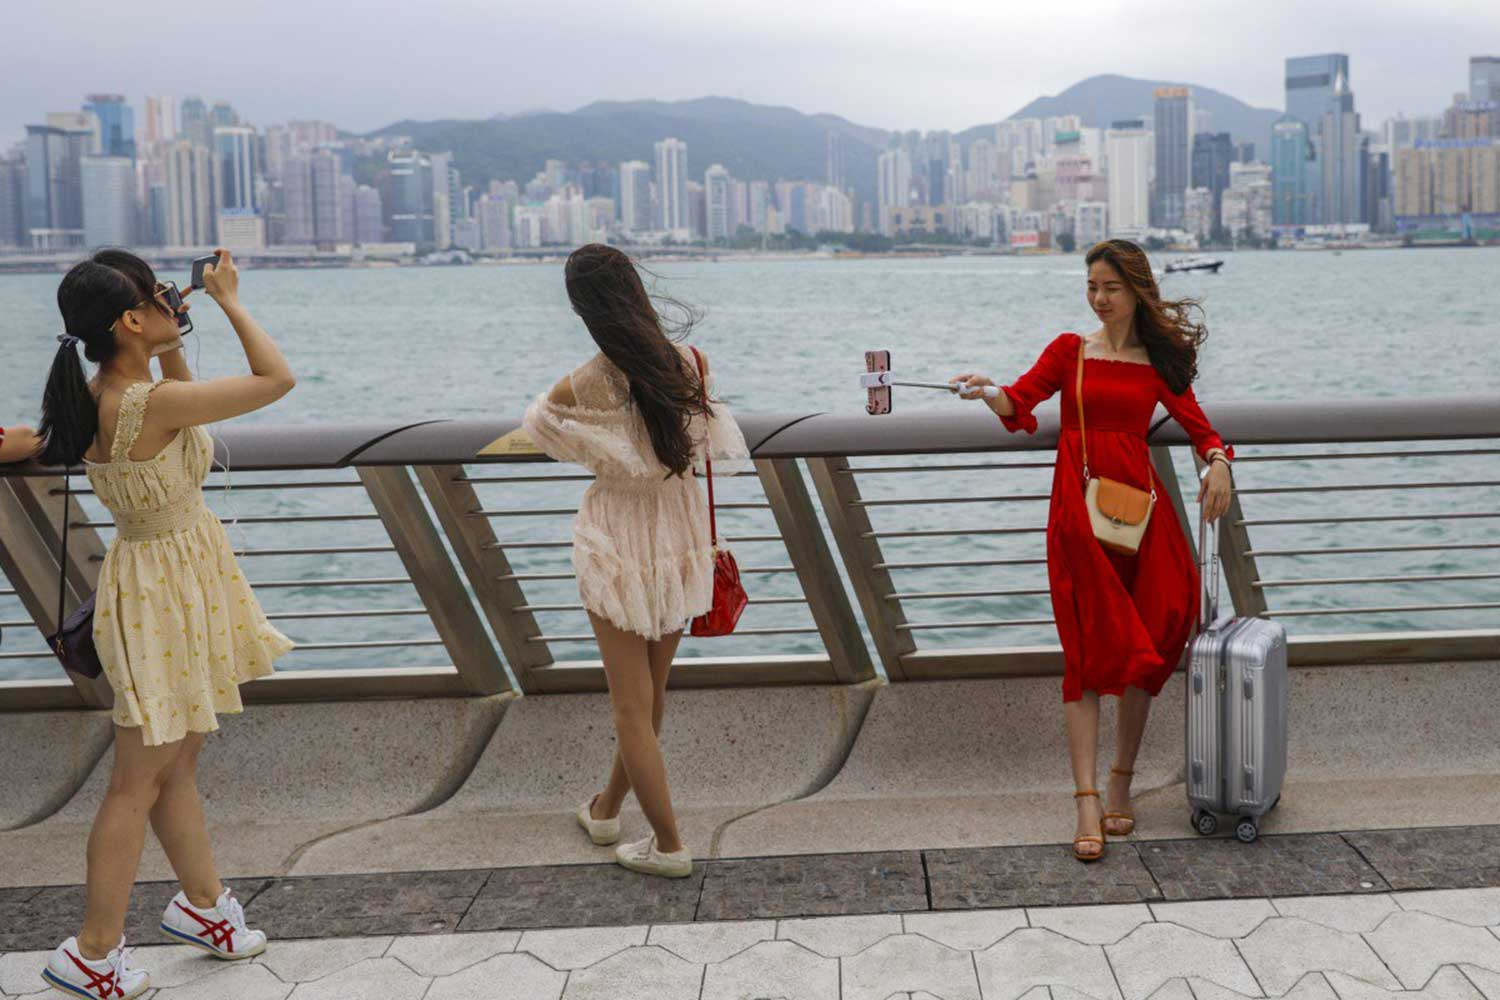 Tourists take pictures during a visit to the Avenue of Stars at Victoria Harbour in Tsim Sha Tsui. (South China Morning Post photo)